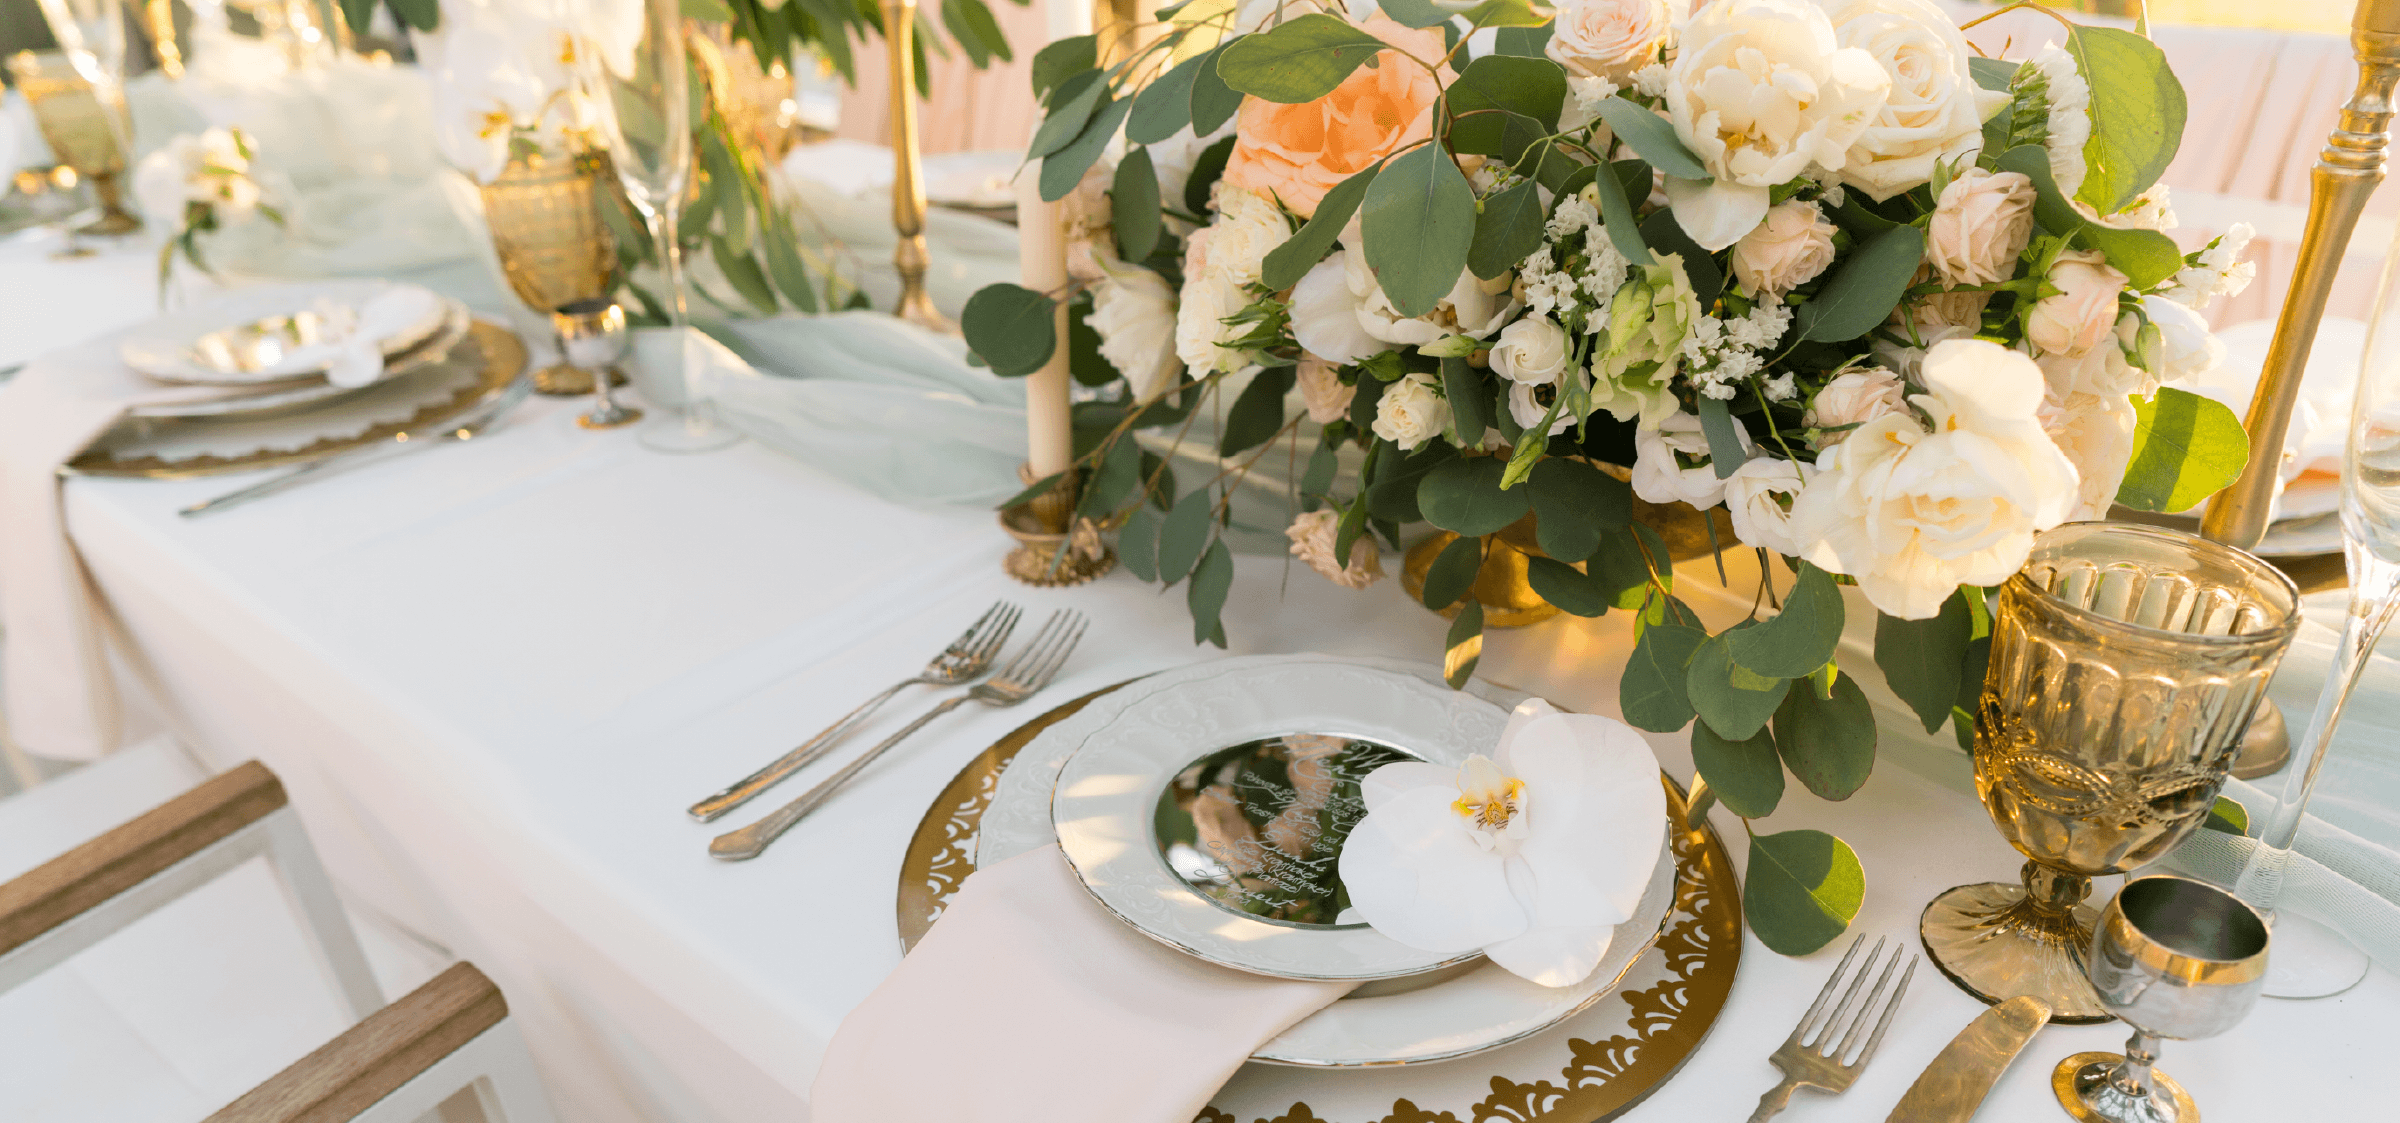 5 Ways To Add Sustainable and Eco-Friendly Details To Your Wedding Philly In Love Philadelphia Weddings